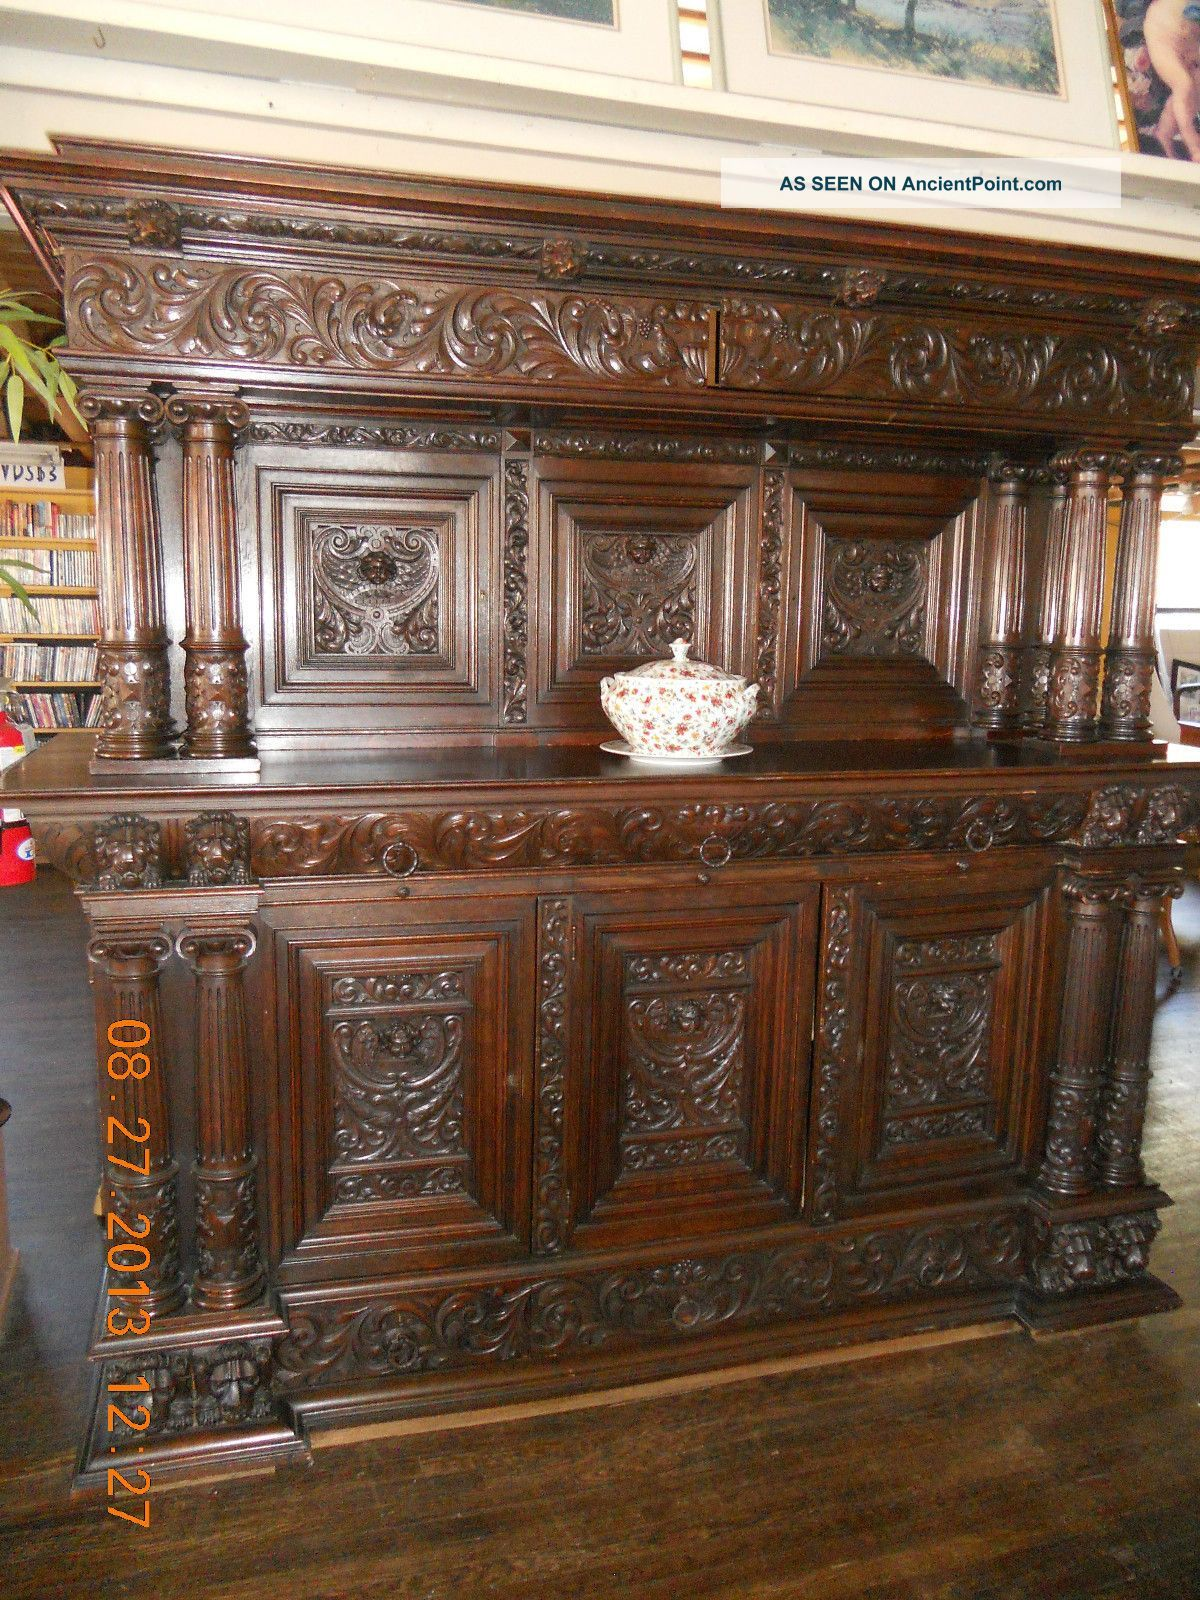 antique hand carved buffet,1800's or early1900's, from